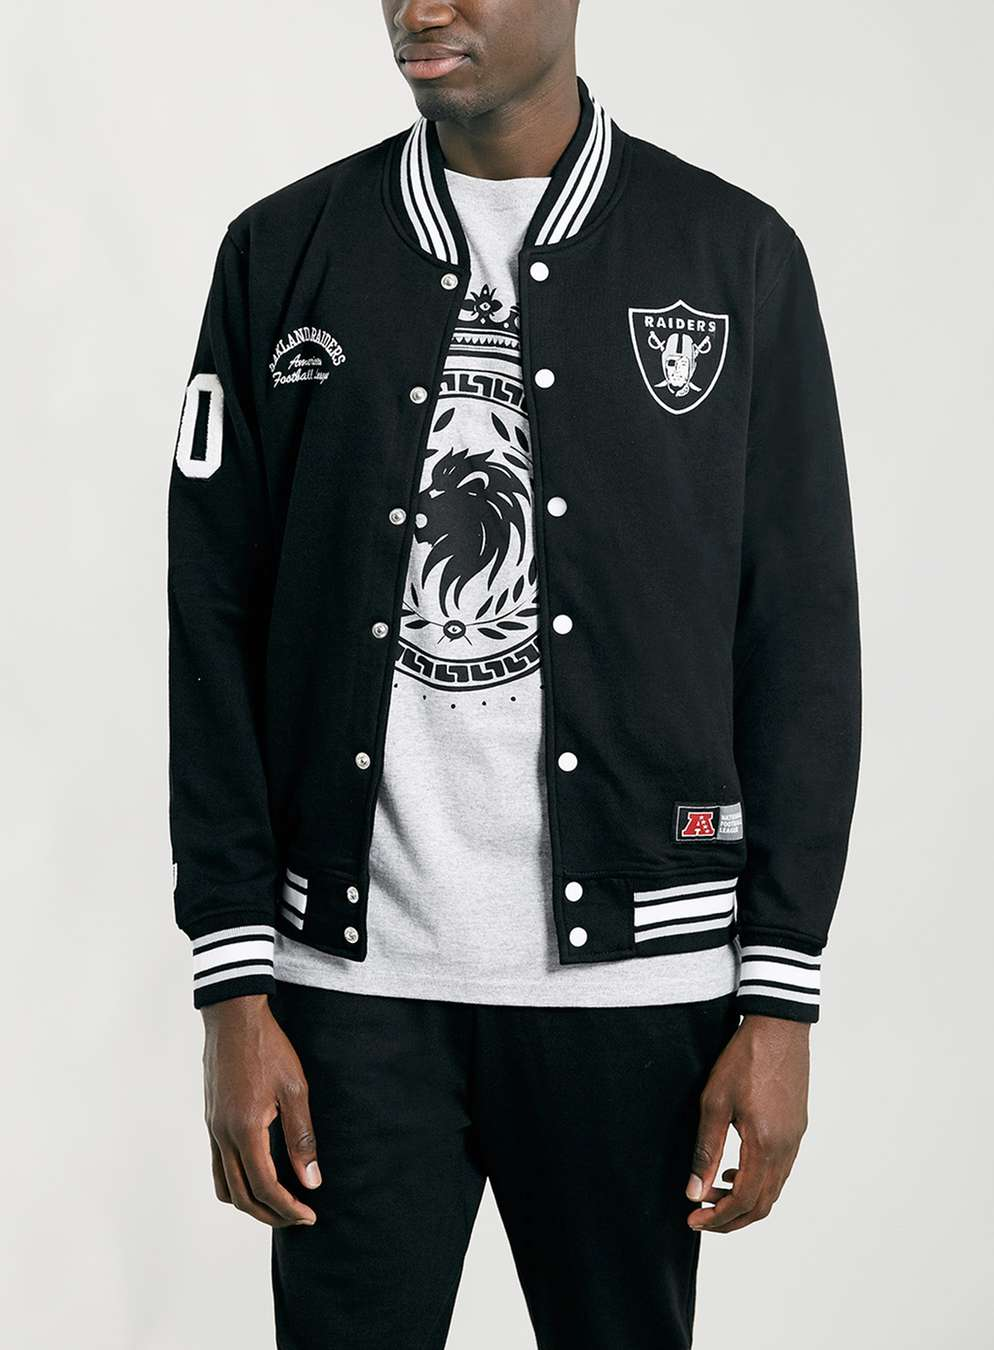 Raiders Letterman Jacket | Oakland Raiders Satin Jacket | Raider Blanket